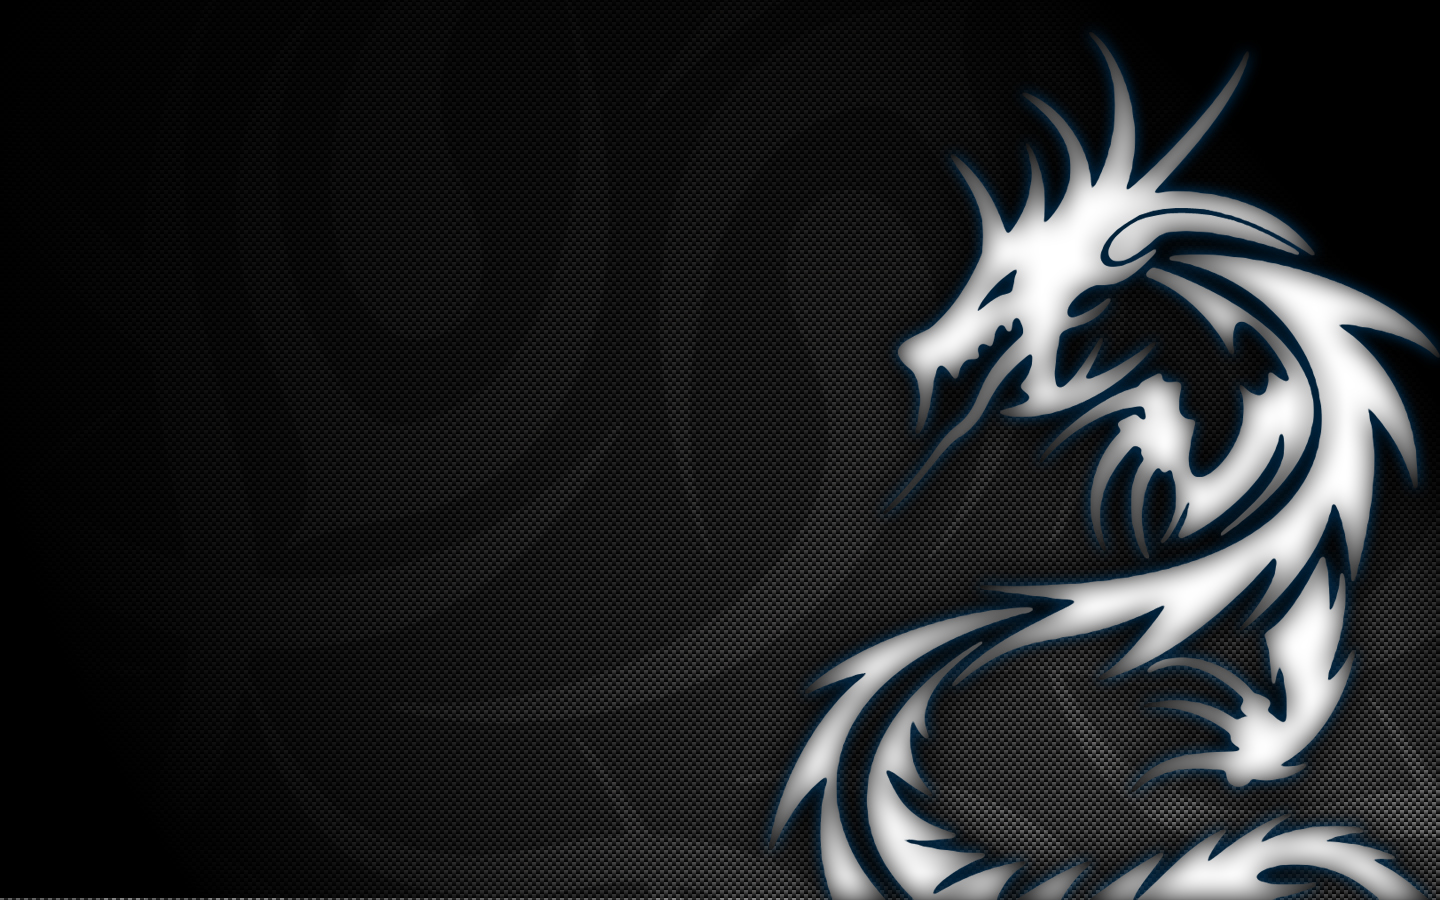 Dragon wallpaper and background image 1440x900 id572712 fantasy dragon artistic tribal wallpaper voltagebd Images